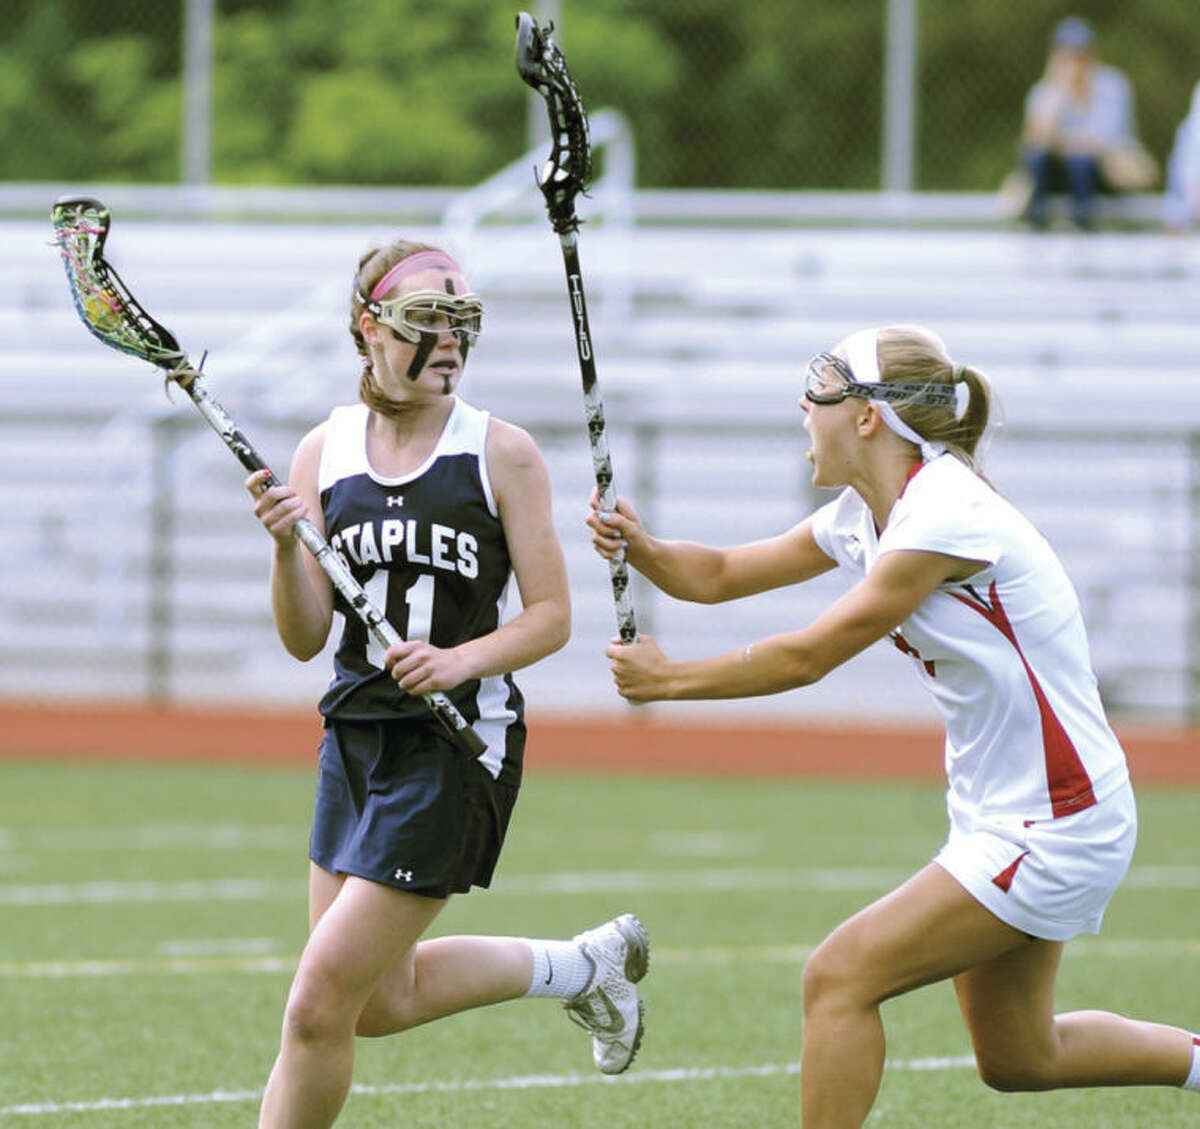 Hour photo/John Nash Staples' Colleen Bannon protects the ball from Greenwich defender Emily Ludington during Friday's FCIAC girls lacrosse quarterfinal at Cardinal Stadium in Greenwich.